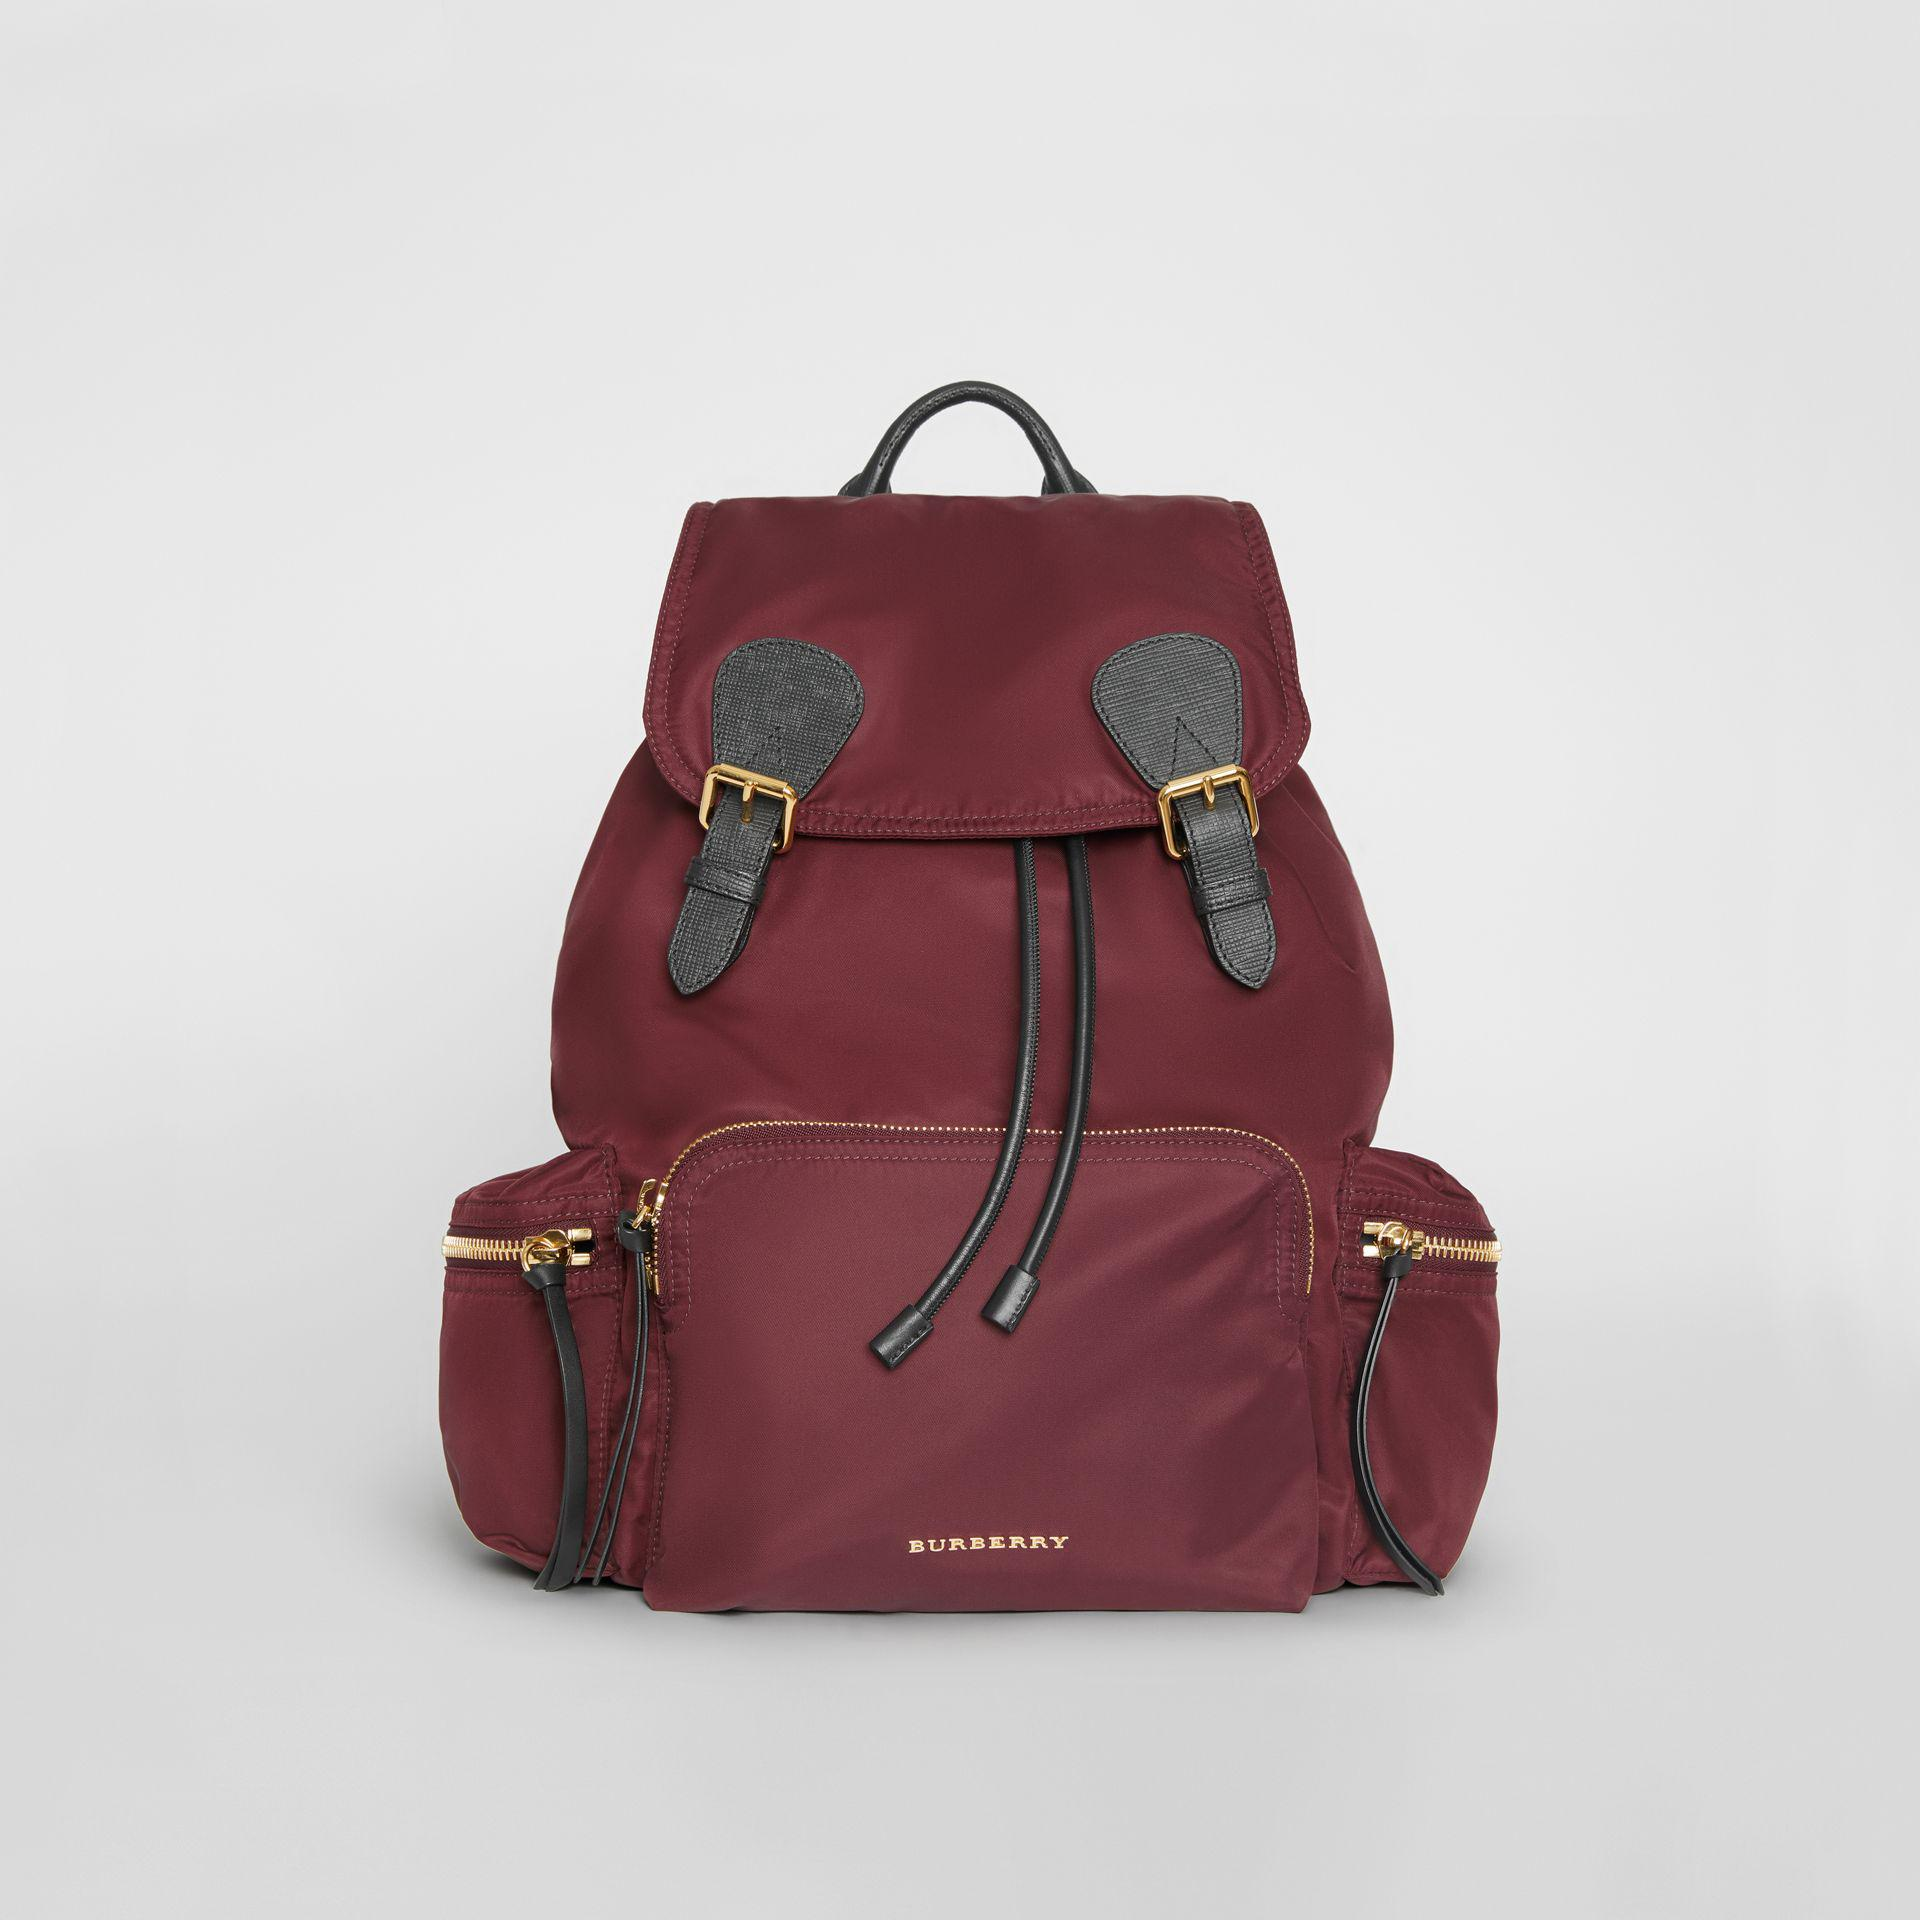 373a0f5ee9ae Burberry - Purple The Large Rucksack In Technical Nylon And Leather  Burgundy Red - Lyst. View fullscreen